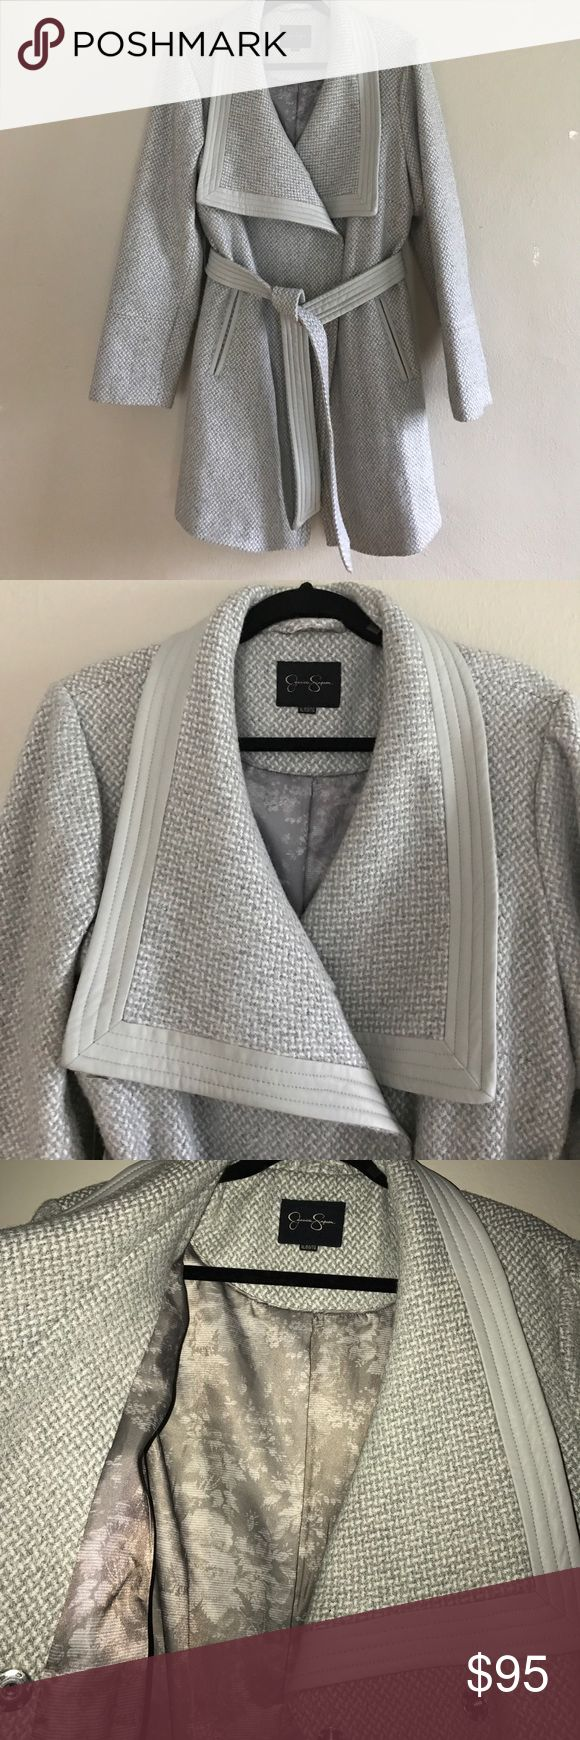 Pale Gray Jessica Simpson pea coat Beautiful woven Jessica Simpson pea coat. Light gray colored, polyester lining detail on collar, pockets and belt. Eyelet buttons. Jessica Simpson Jackets & Coats Pea Coats